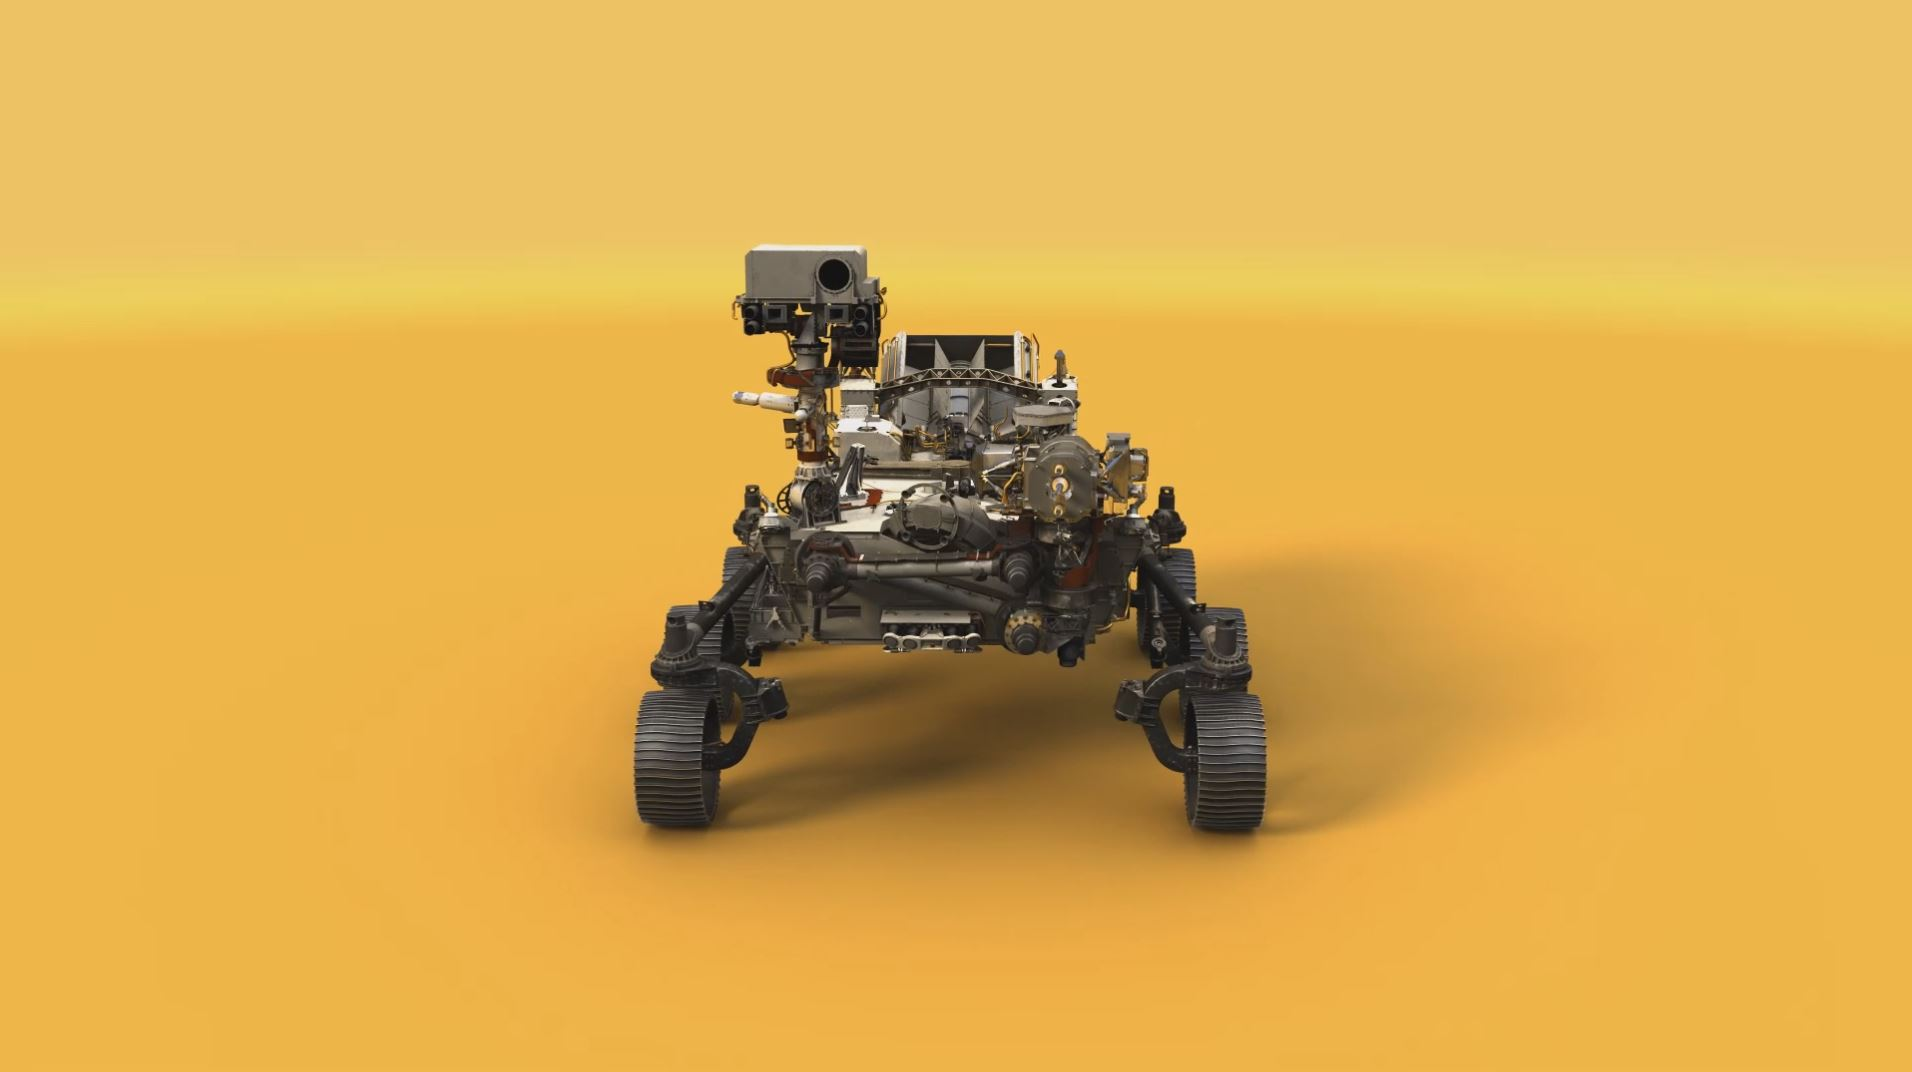 see the image 'Mars 2020 Rover Model'